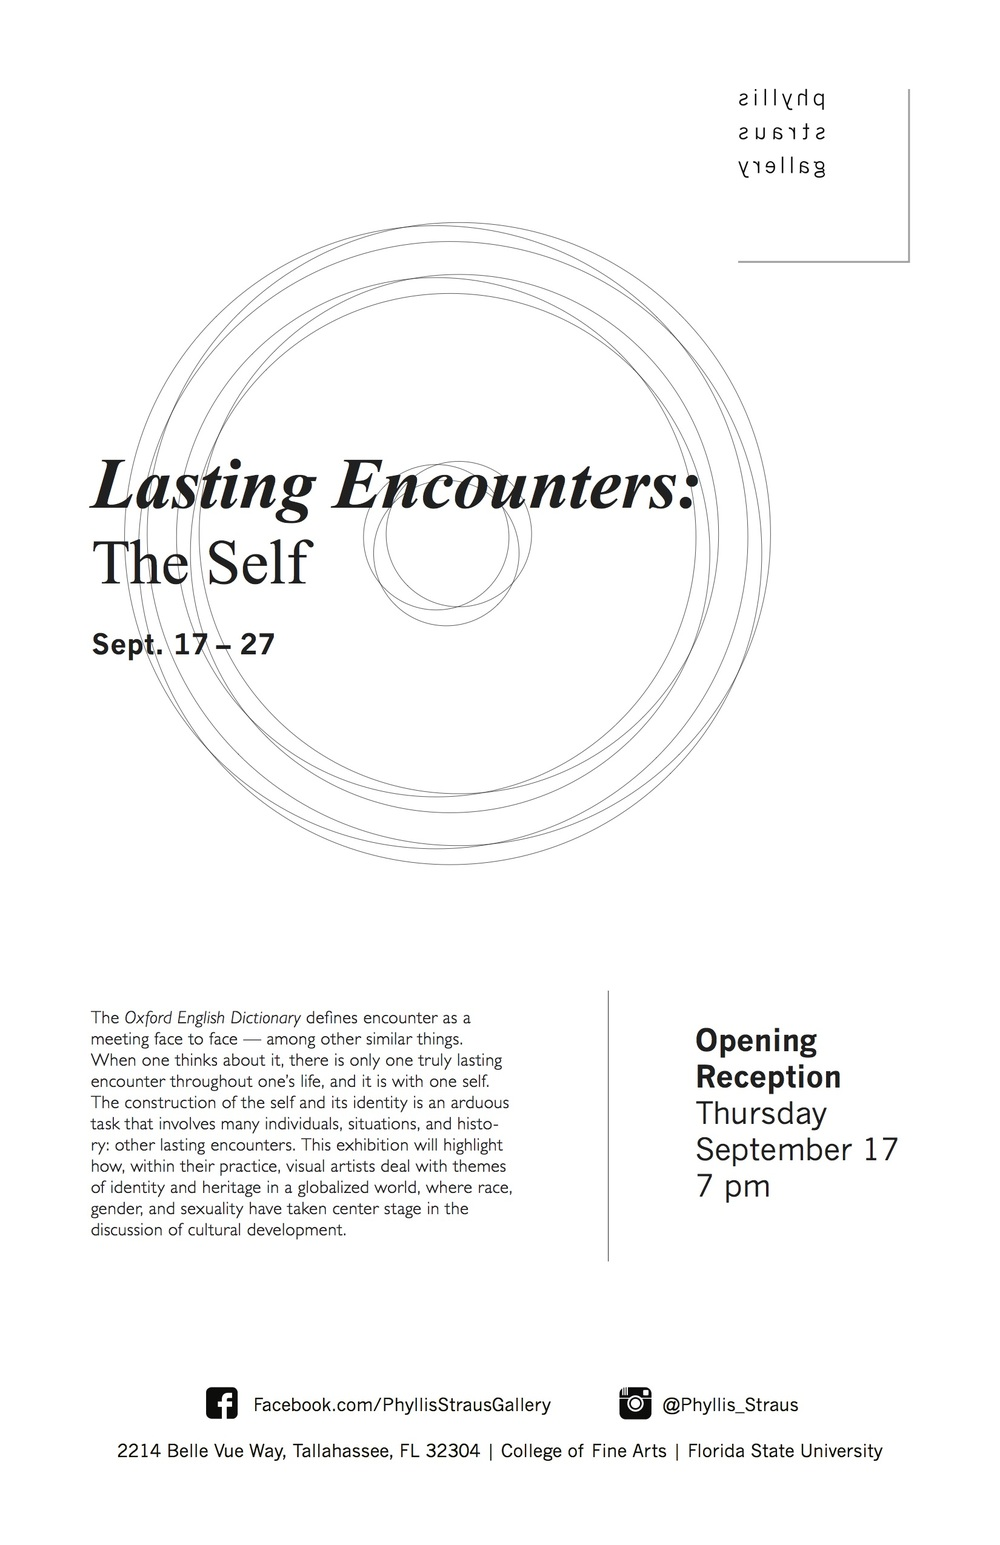 Lasting Encounters Exhibition Poster